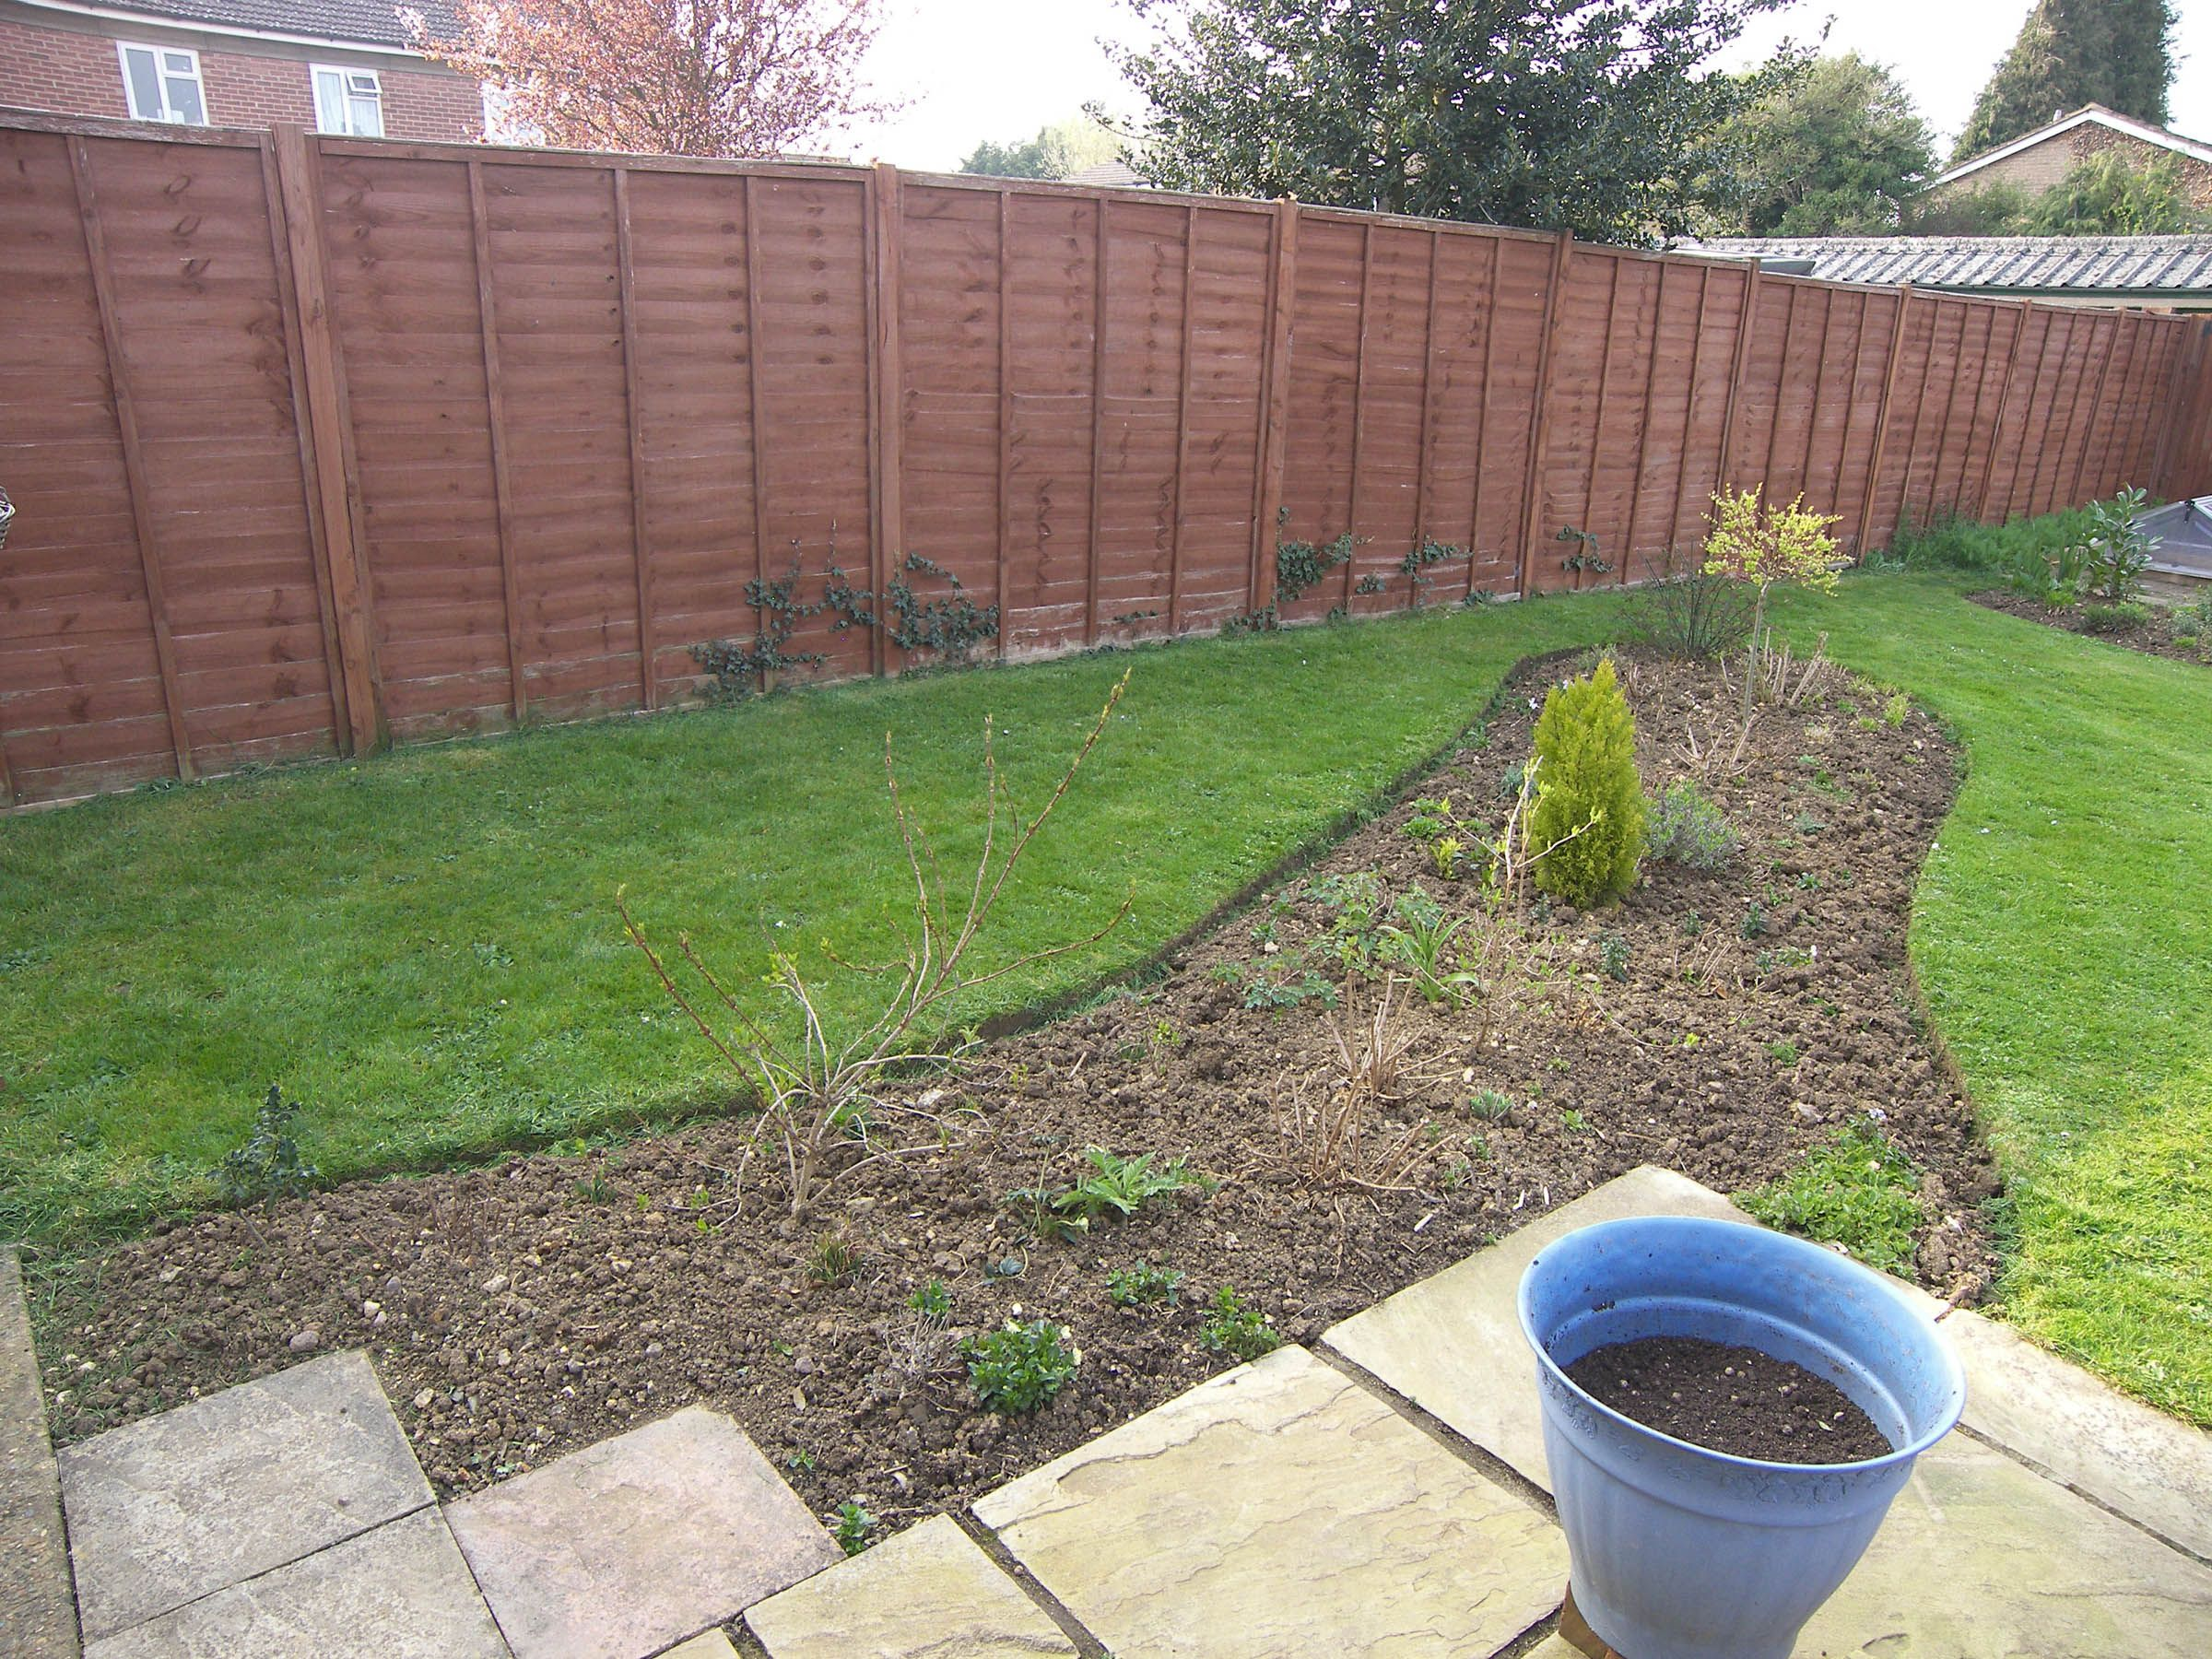 Completed and planted after 3yrs 4 months, few gaps to fill in, spring is here